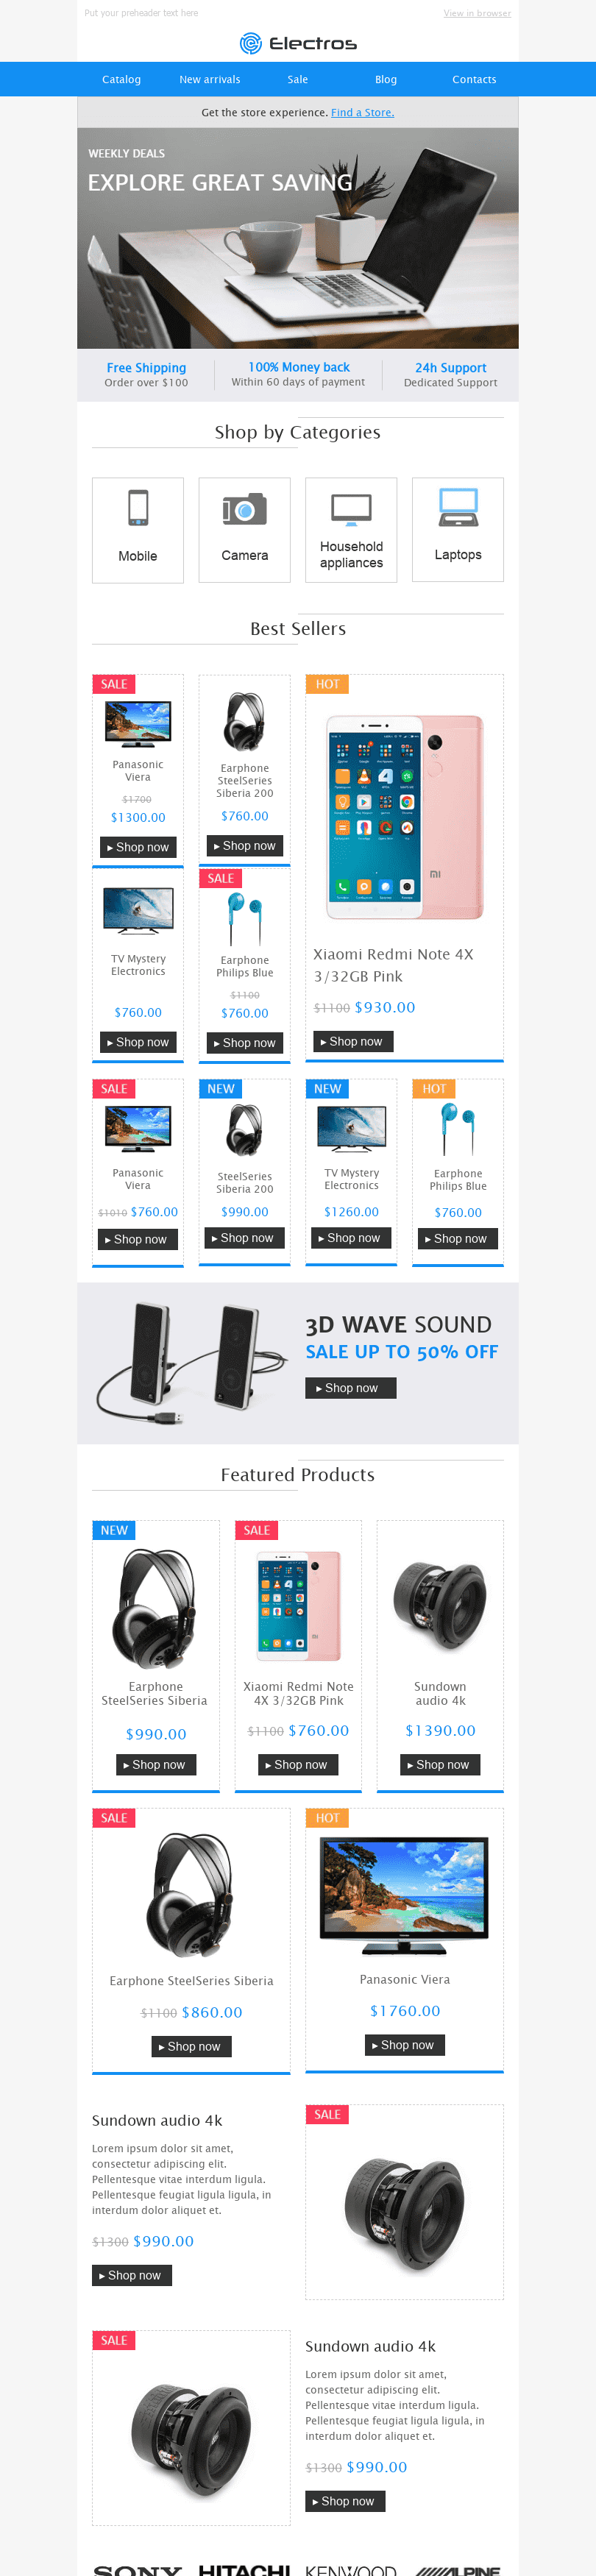 "Promo Email Template ""Best Gadgets"" for Gadgets industry desktop view"